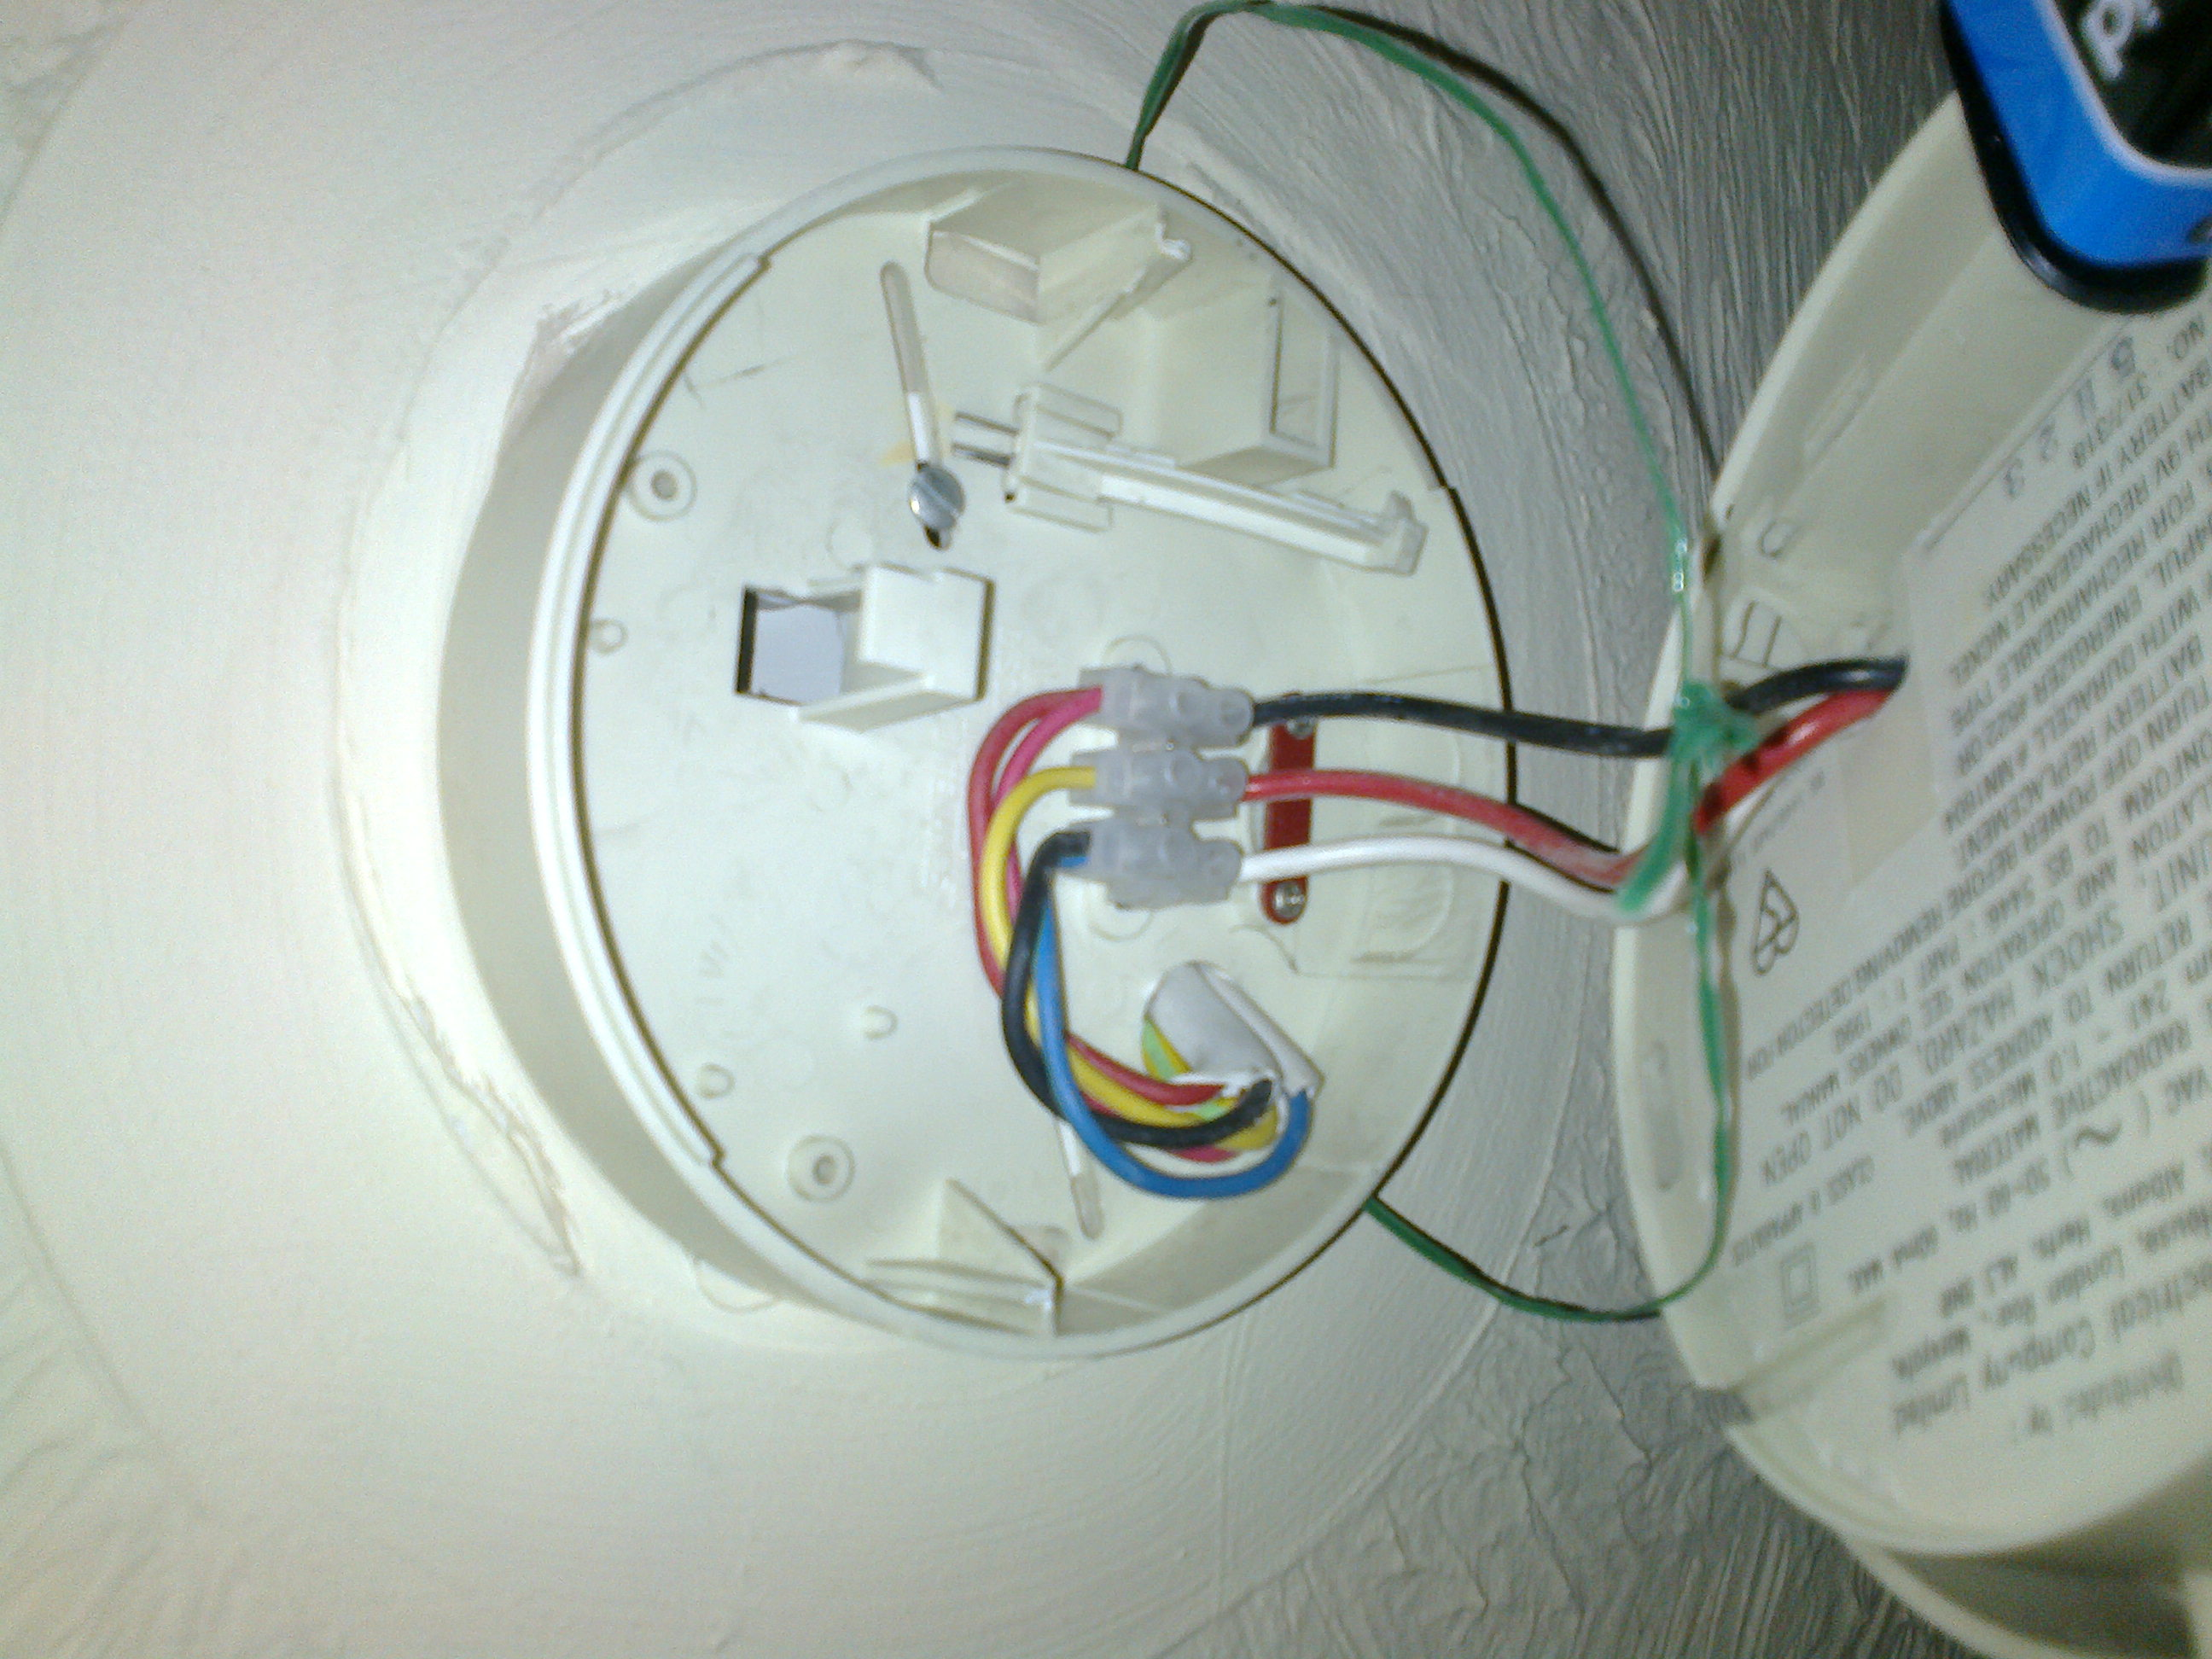 Smoke detector wiring uk example electrical wiring diagram crossed up wiring on smoke alarm nexelec electrician rh nexelec co uk smoke detector wiring harness smoke detector wiring kissimmee asfbconference2016 Gallery